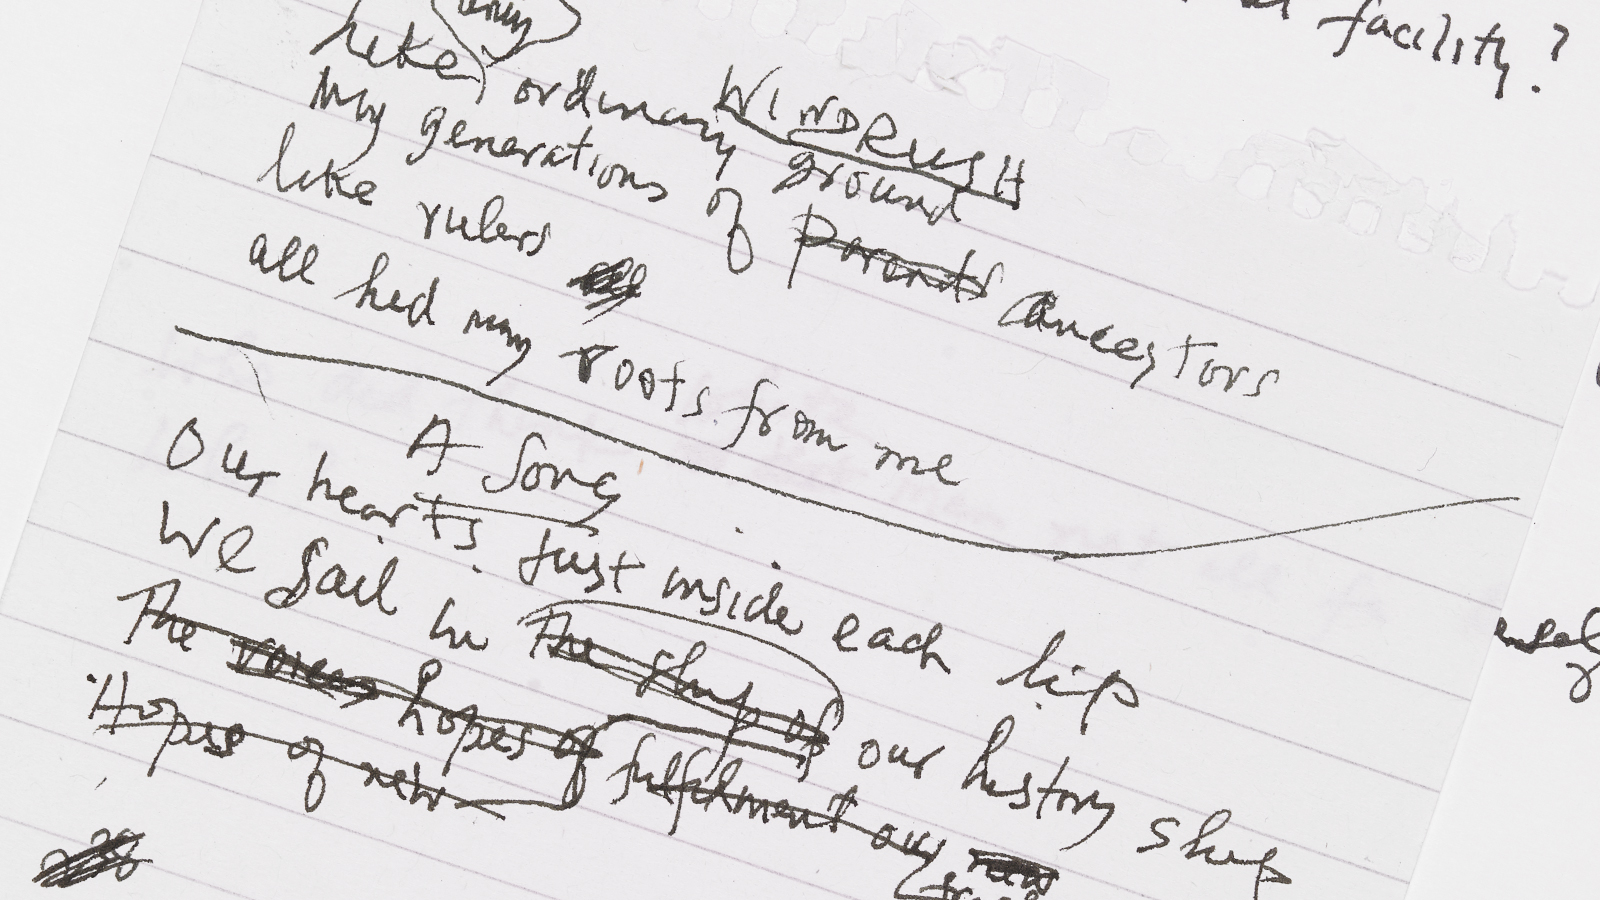 Crop of a page from handwritten drafts for Windrush Songs by James Berry